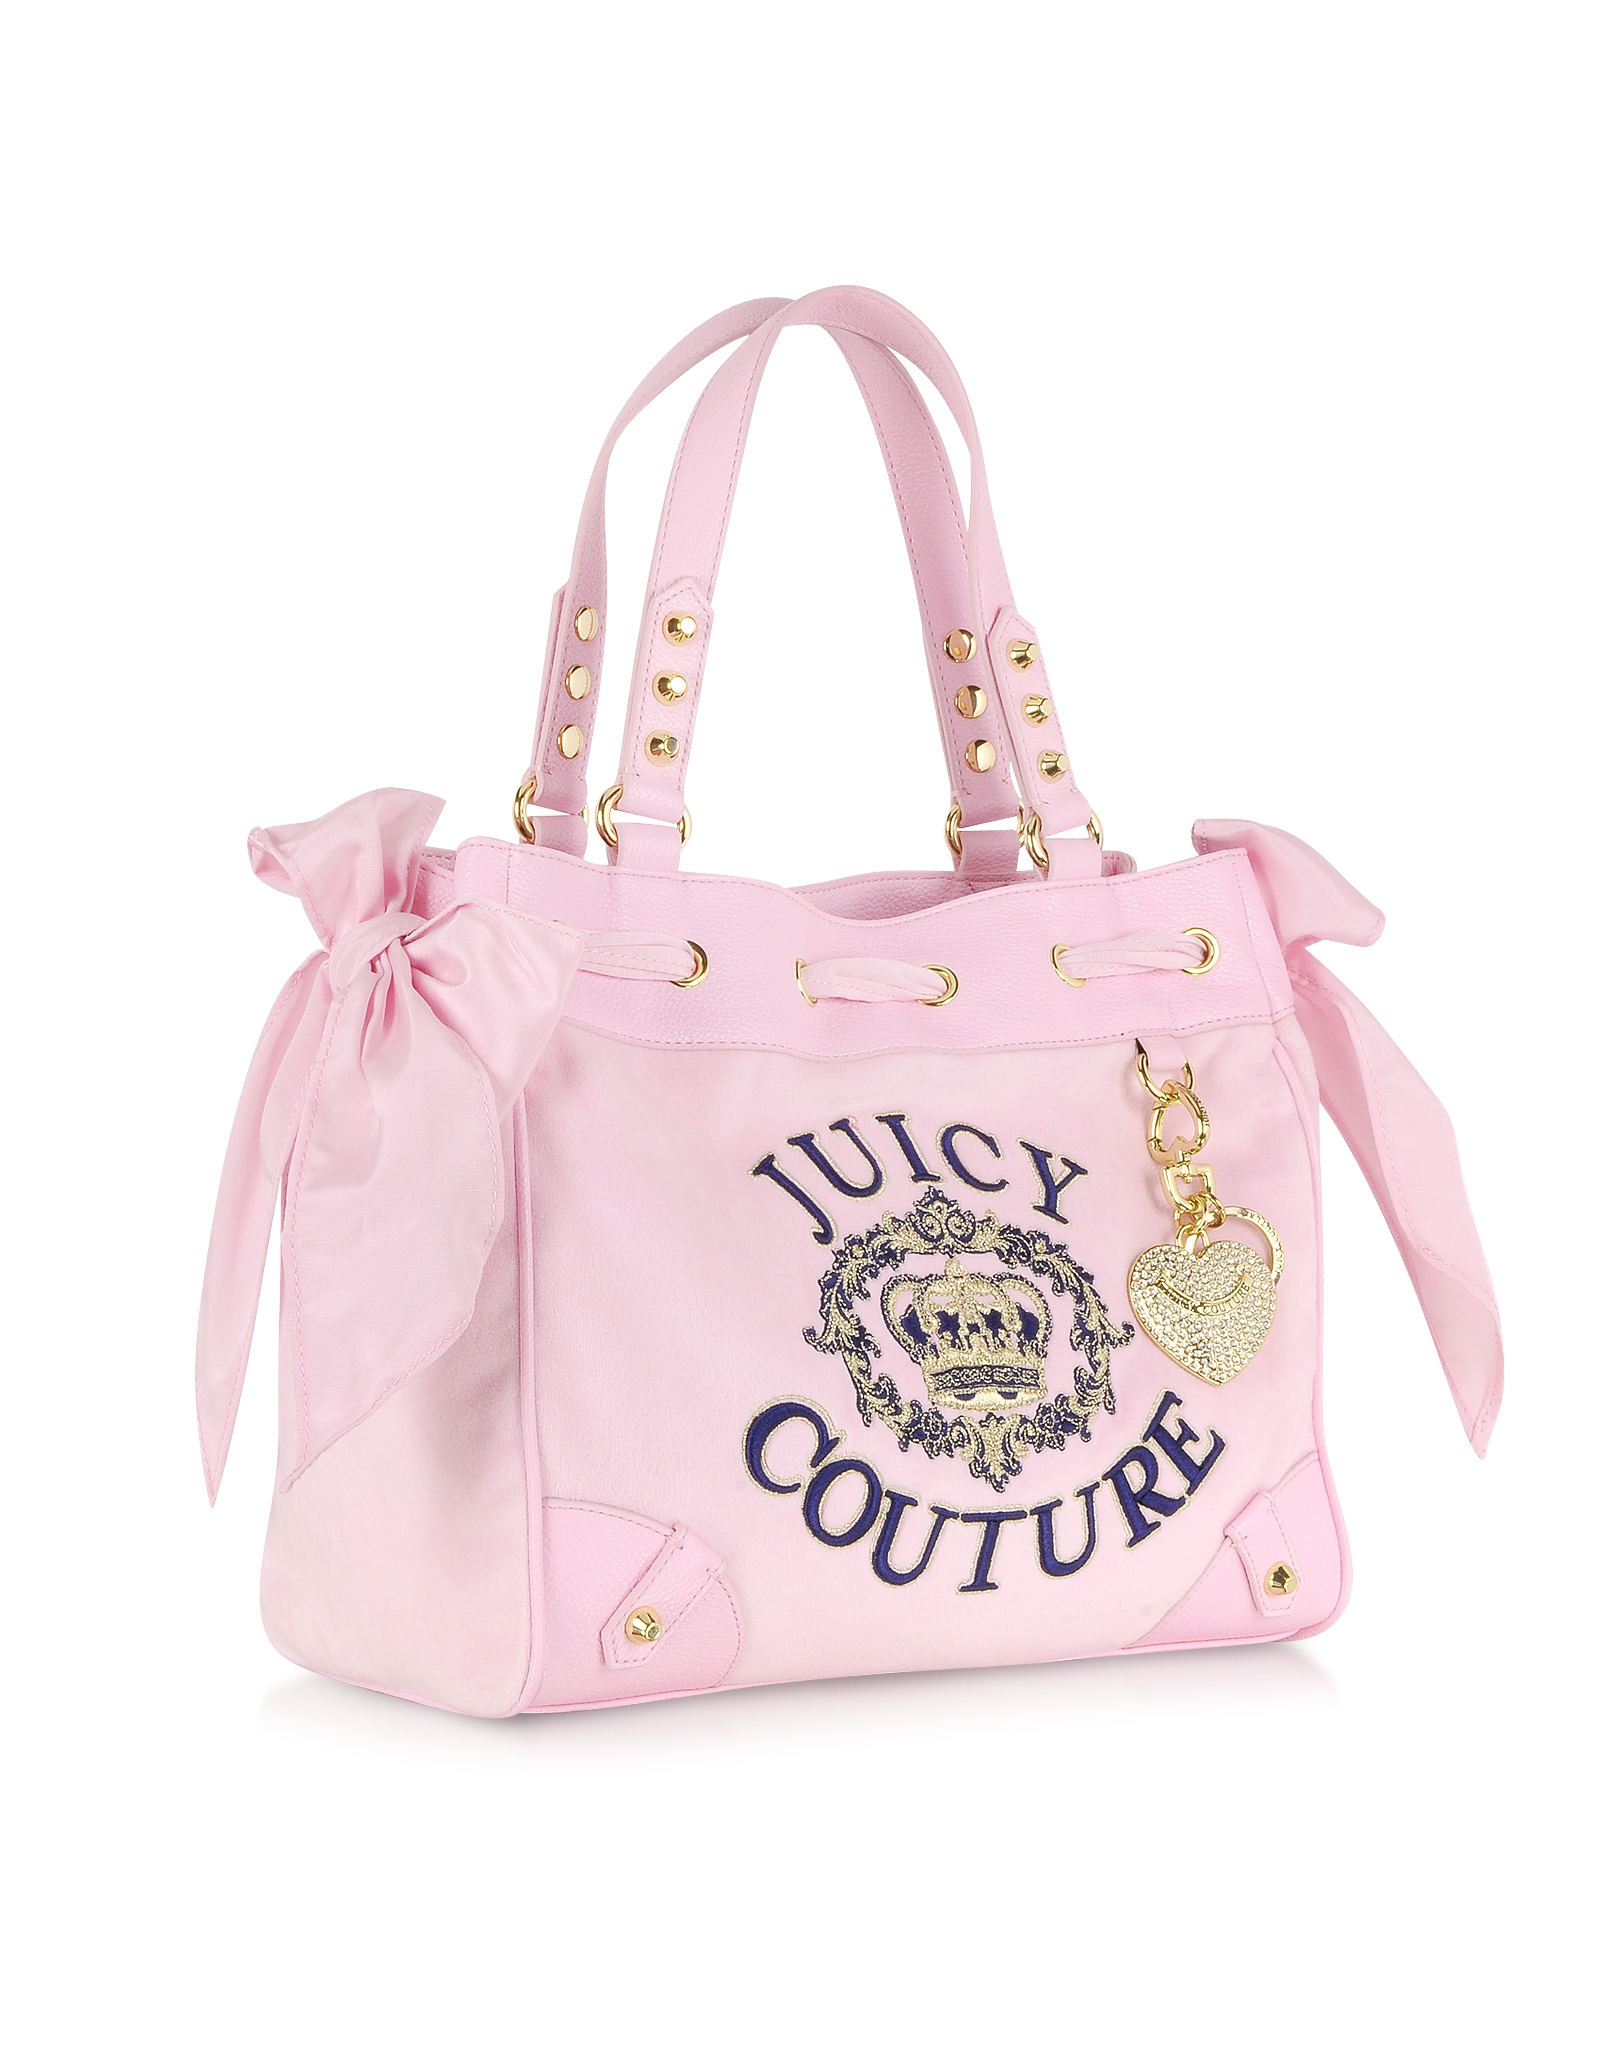 Juicy Couture - Official Site Juicy couture fashion velour daydreamer tote